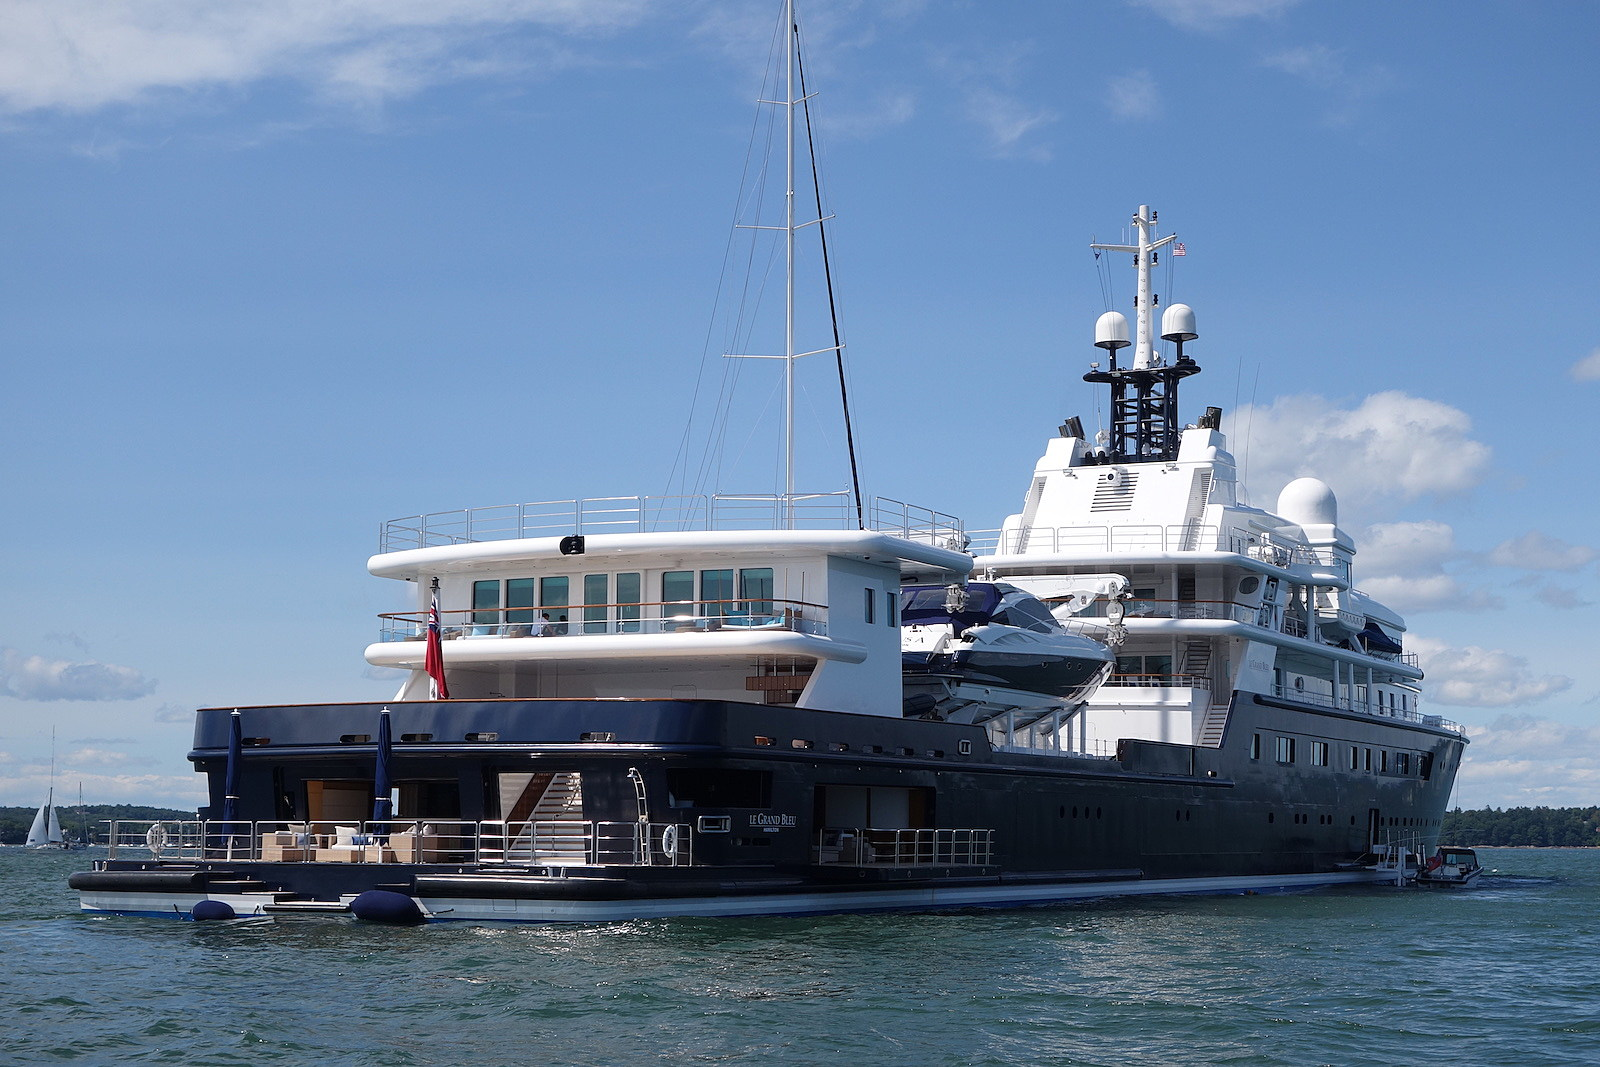 The Luxury Features Of This Massive Yacht Anchored In Portland